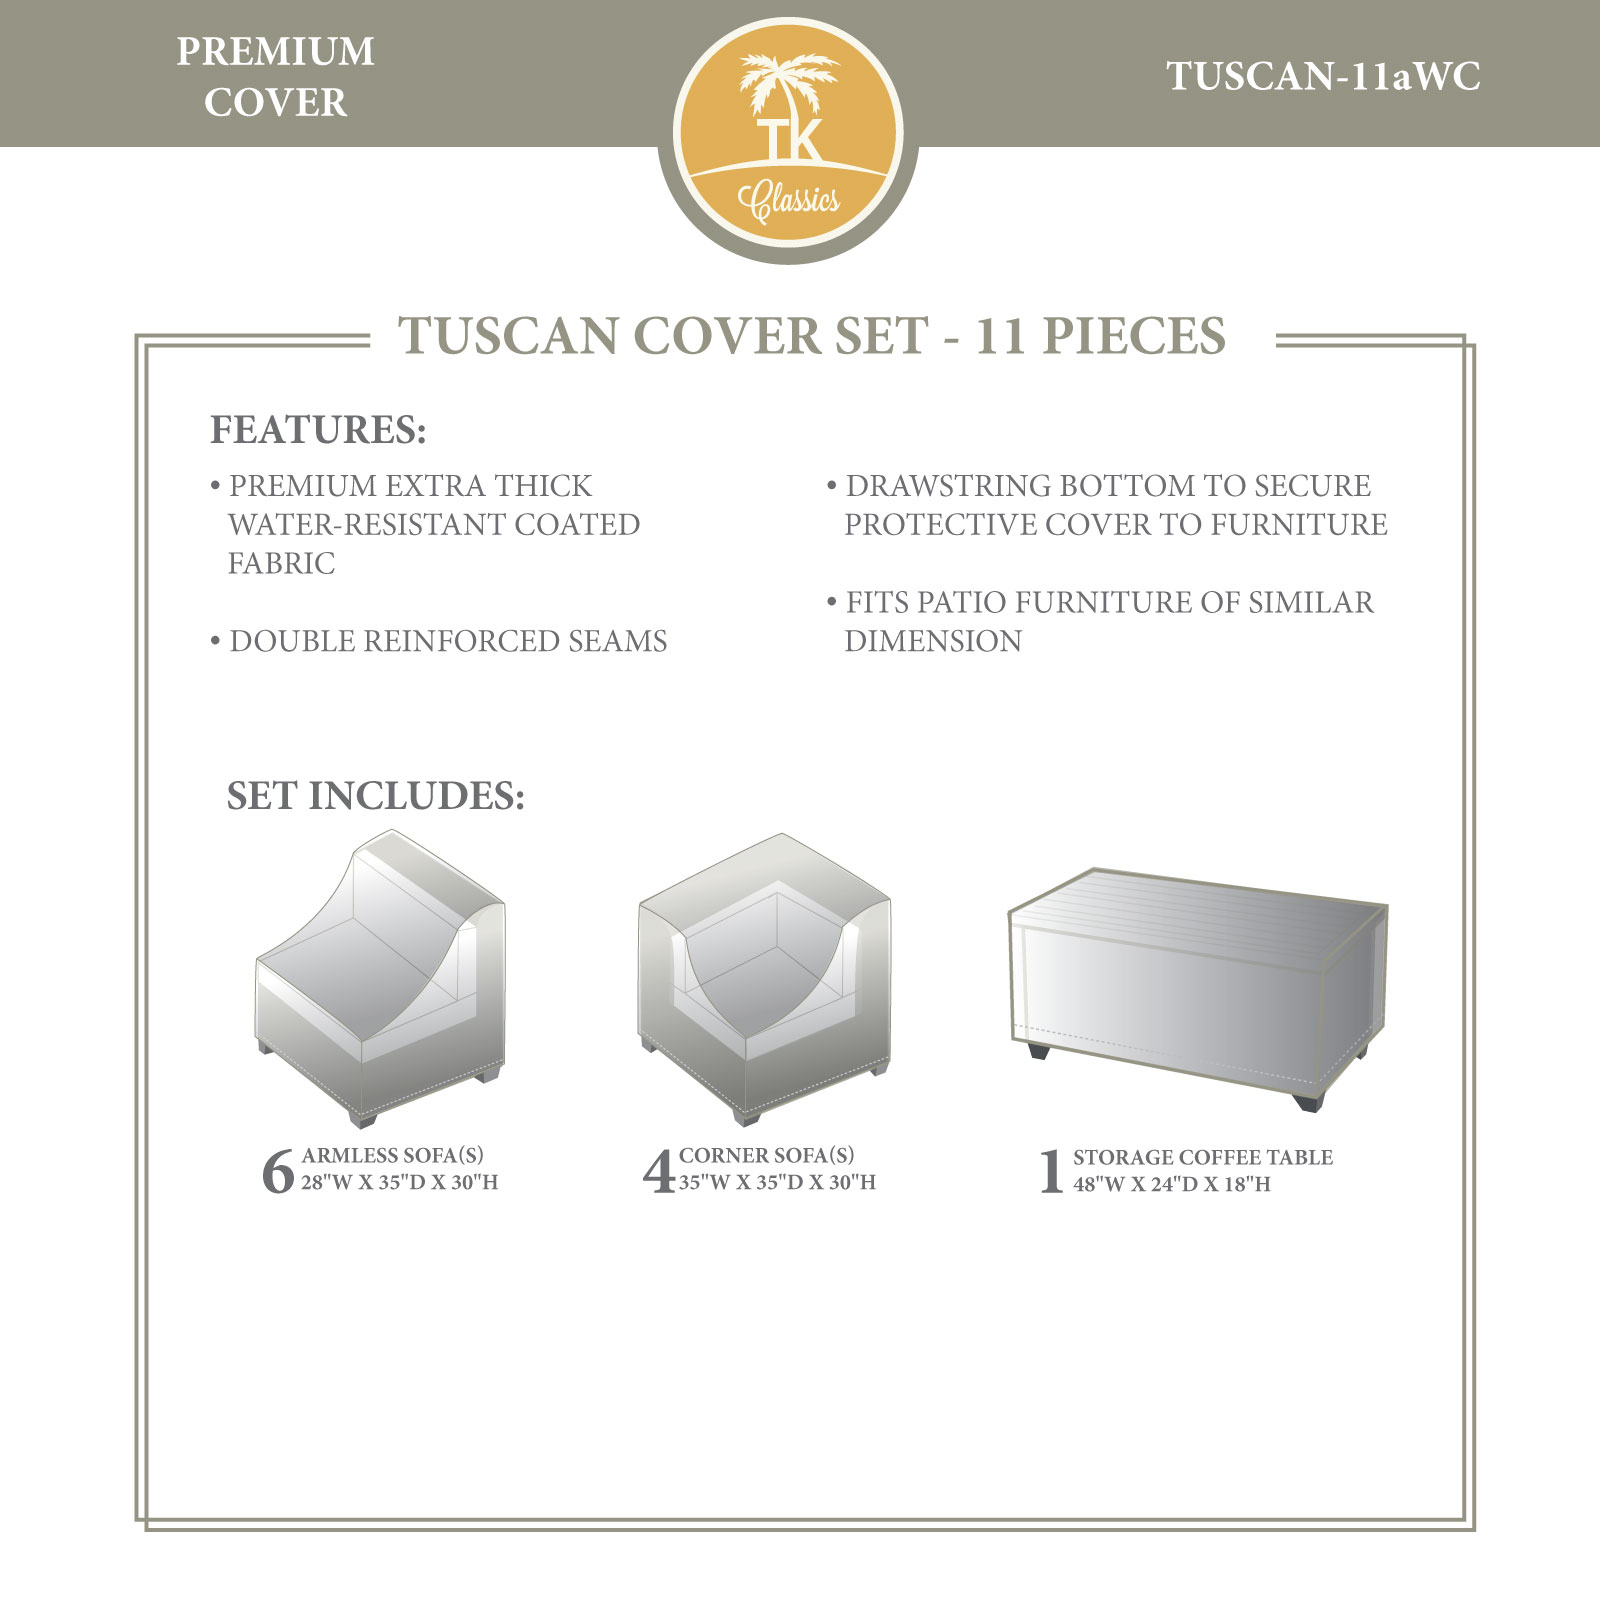 TUSCAN-11a Winter Cover Set